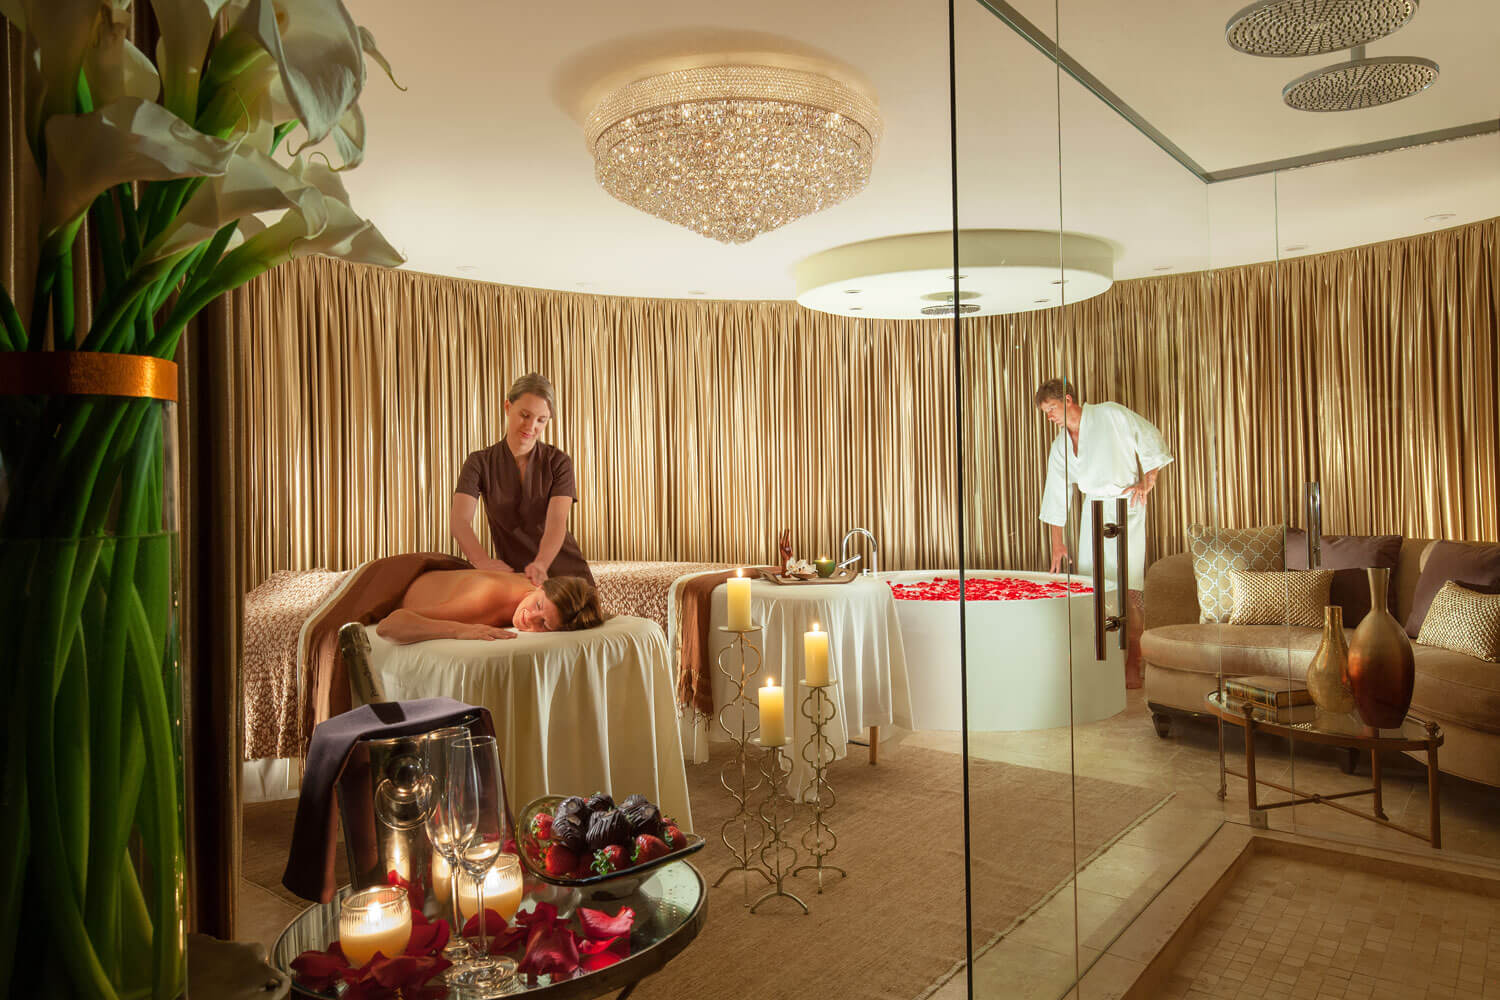 Spa Suites at the Rustic | Jackson Hole Spa Suites | Jackson Hole Spa